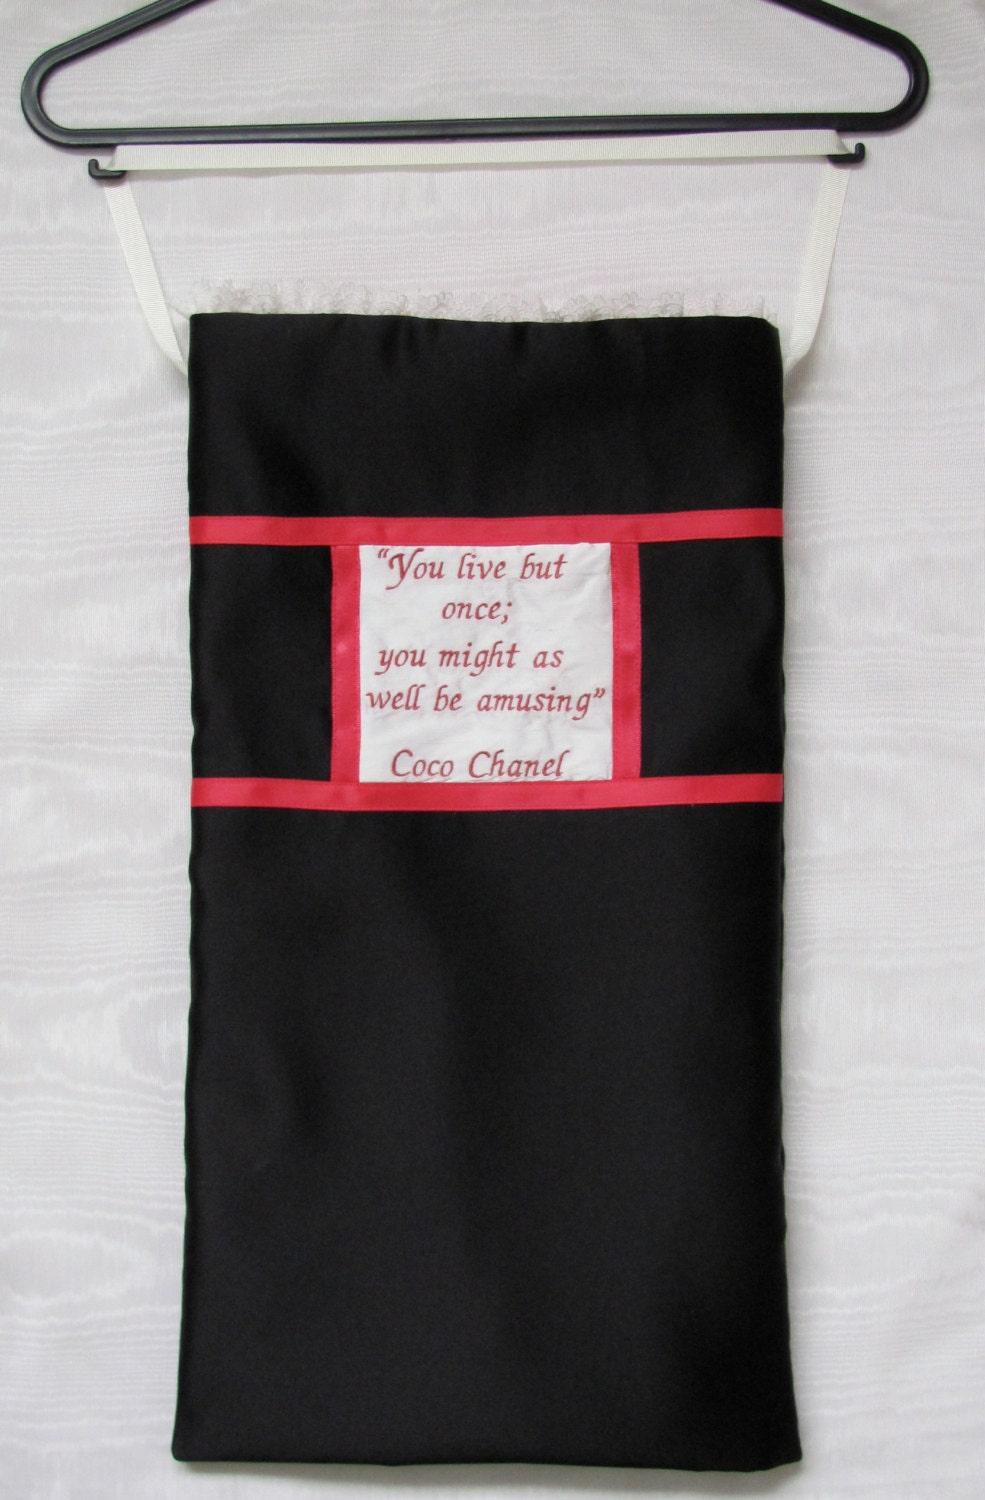 Nightdress Lingerie Case in black Duchess Satin with Chanel Quote Lace and ribbon  Coco